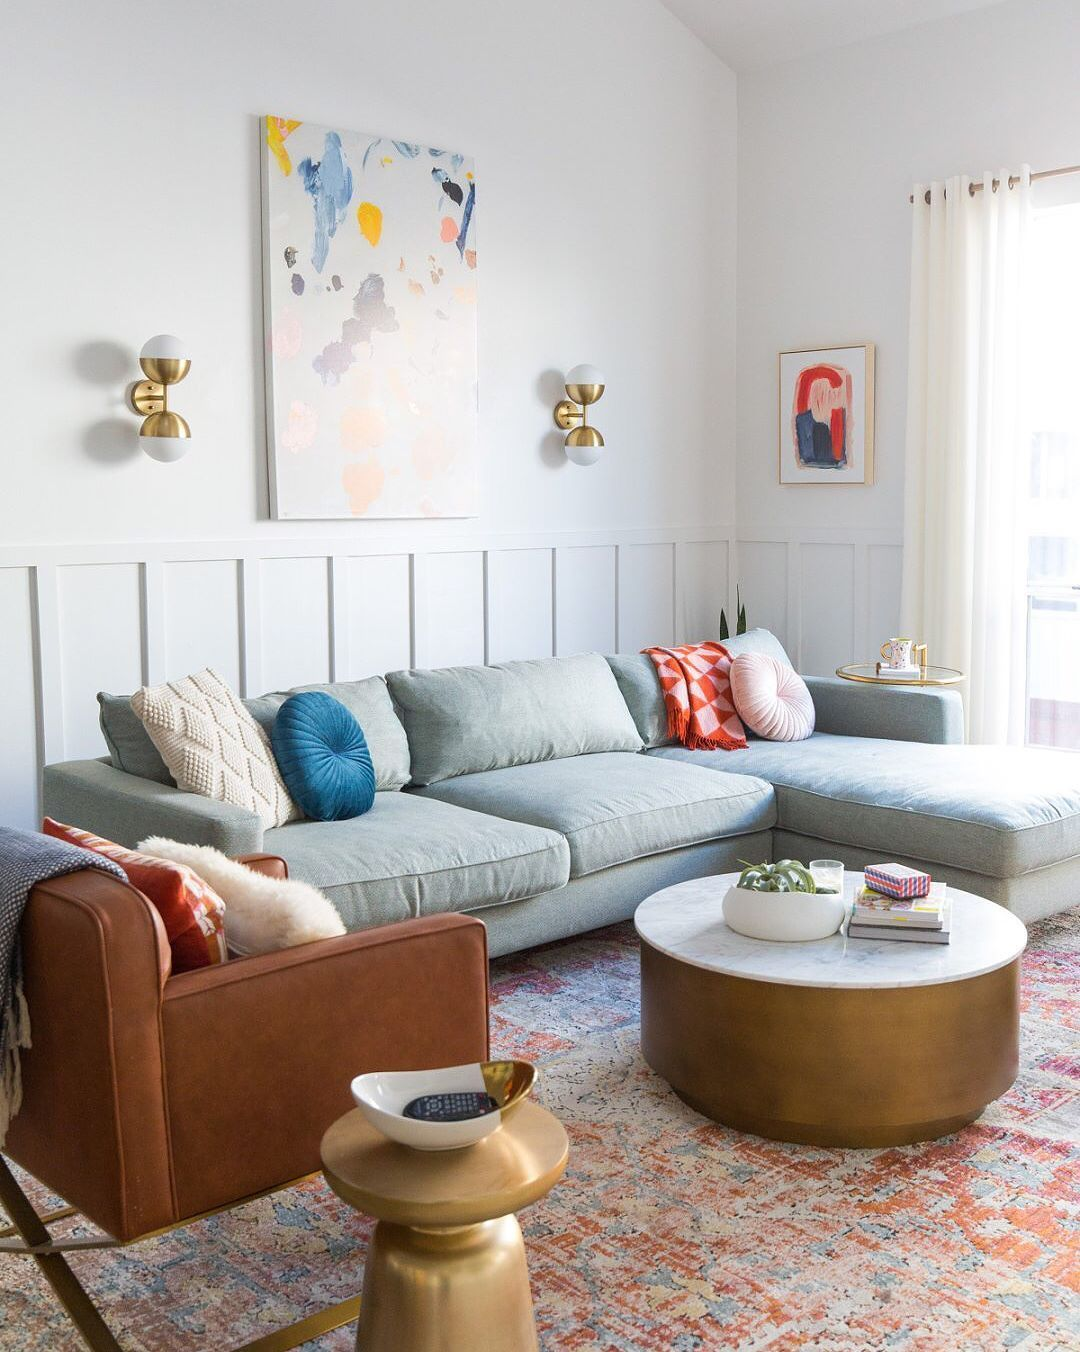 Pinch interior design tips from these real Scandinavian homes